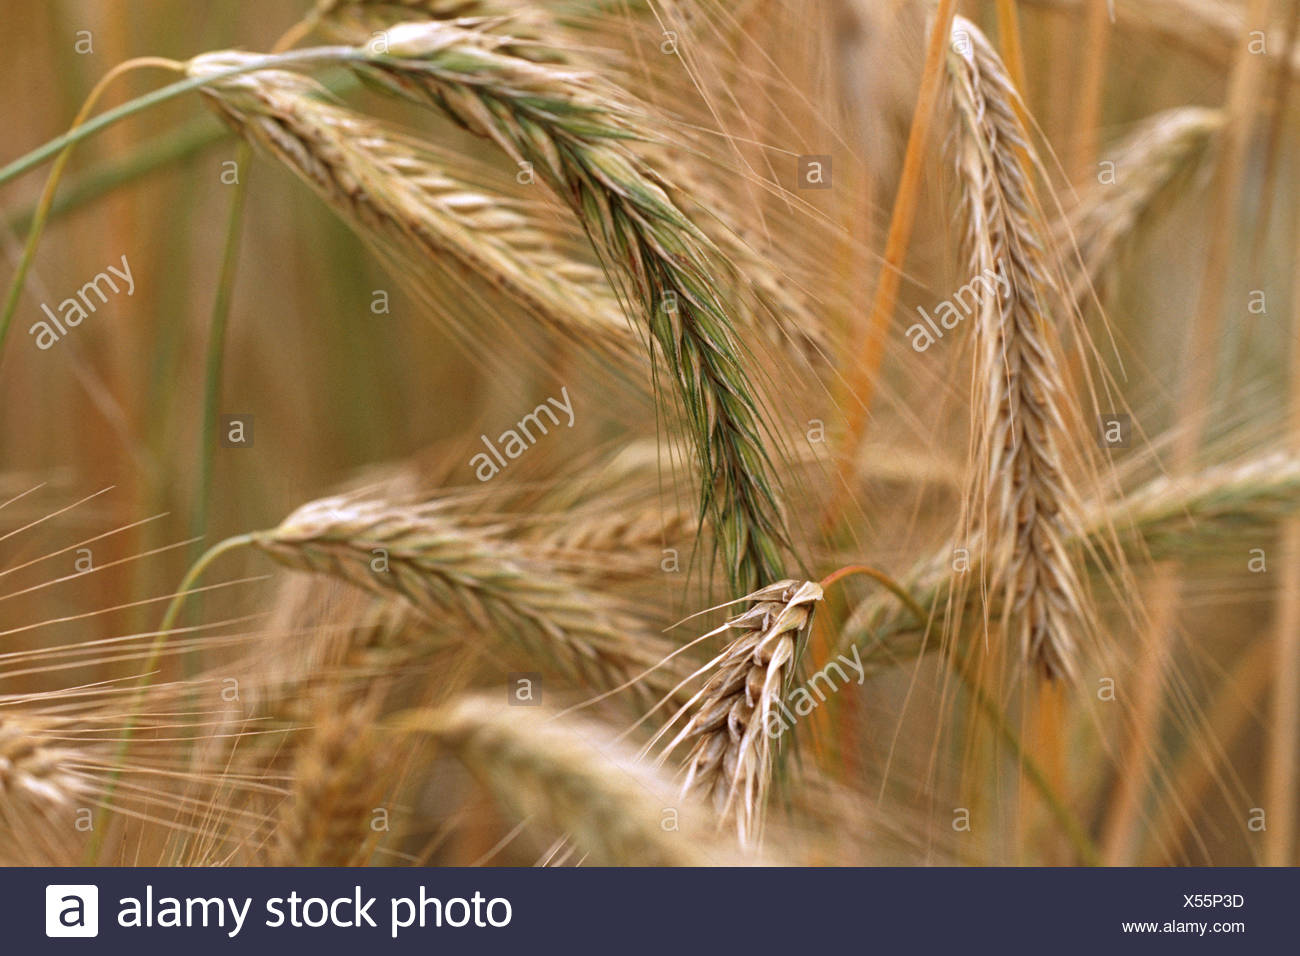 cultivated rye (Secale cereale 'Afghanicum', Secale cereale Afghanicum), cultivar Afghanicum - Stock Image